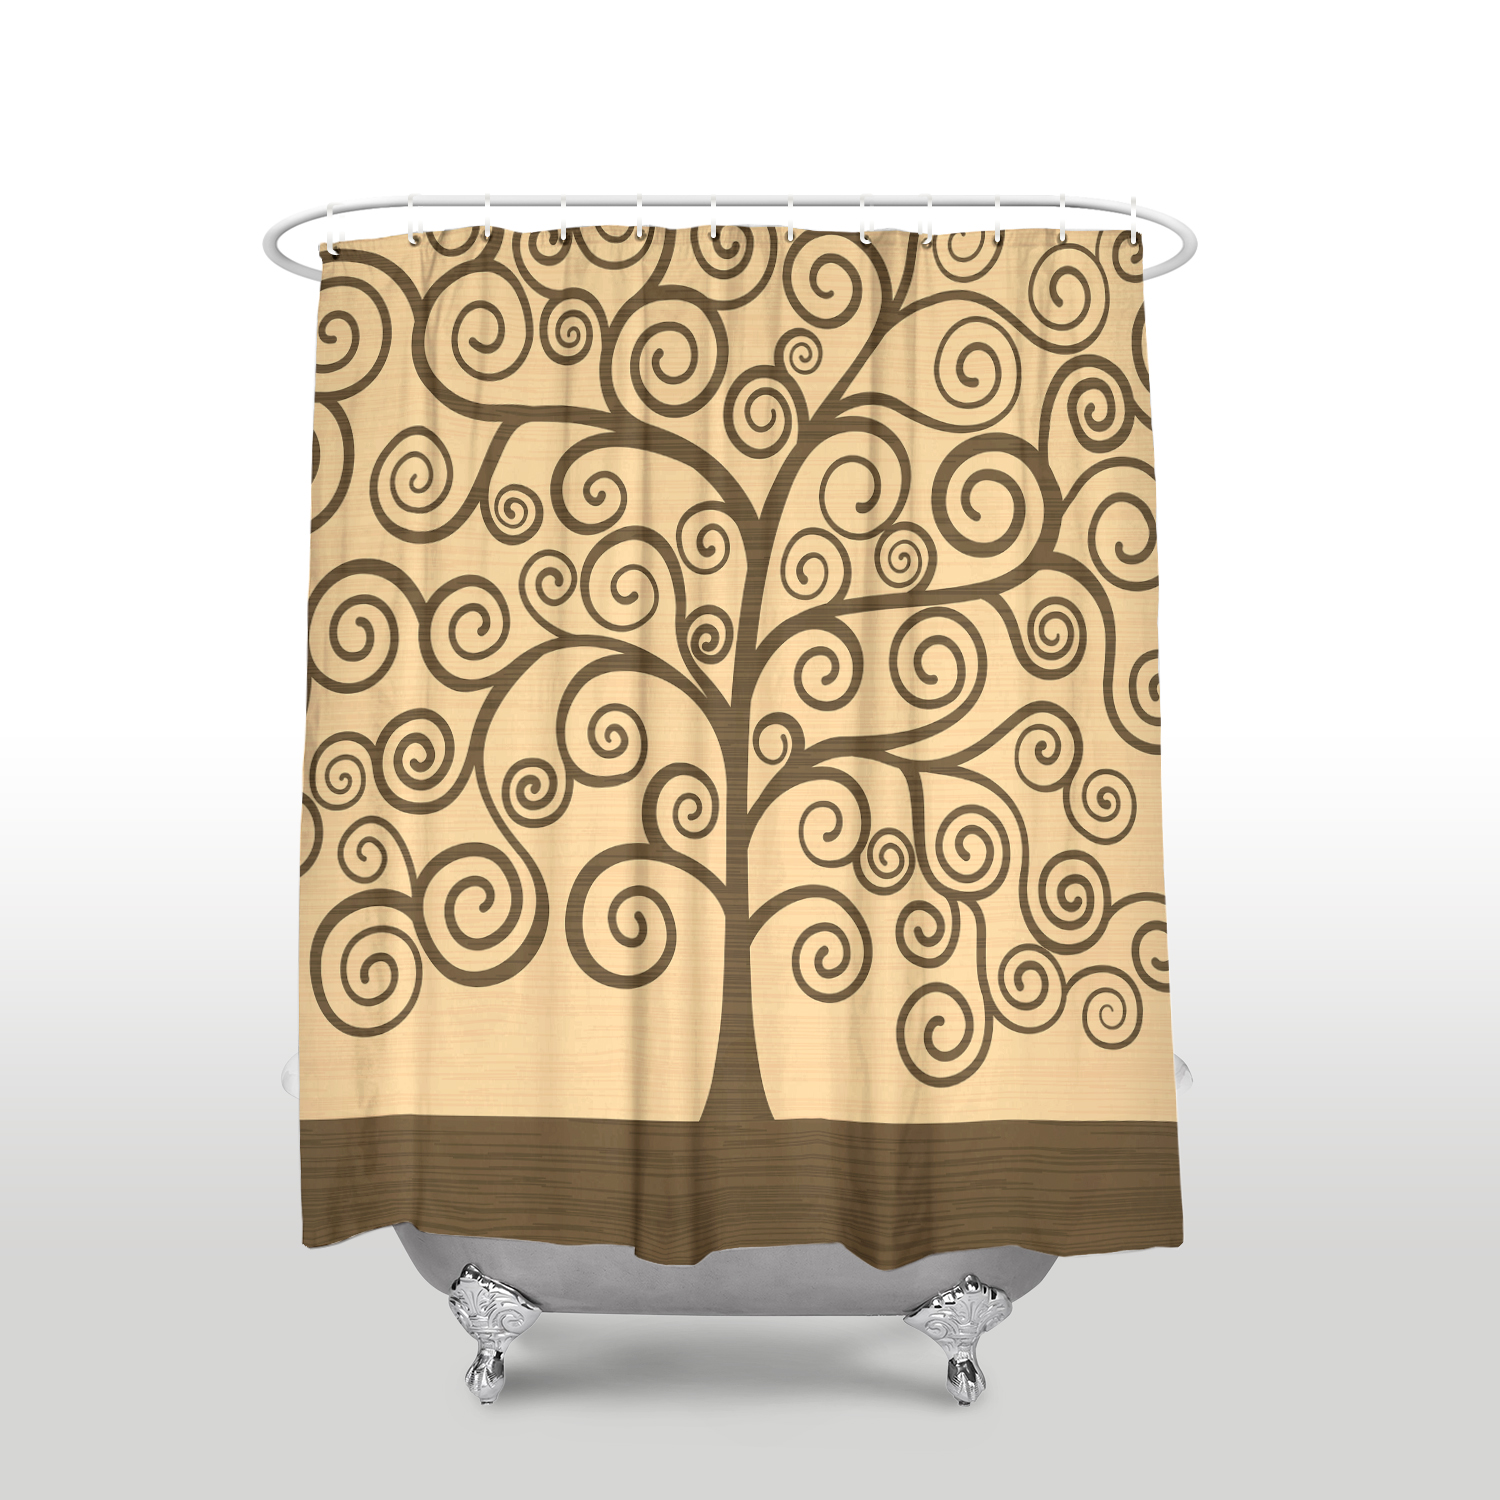 Us 16 97 45 Off New Waterproof Gustav Klimt Tree Of Life Printed Shower Curtain Polyester Fabric Yellow Bathroom Curtains For Home Decorations In